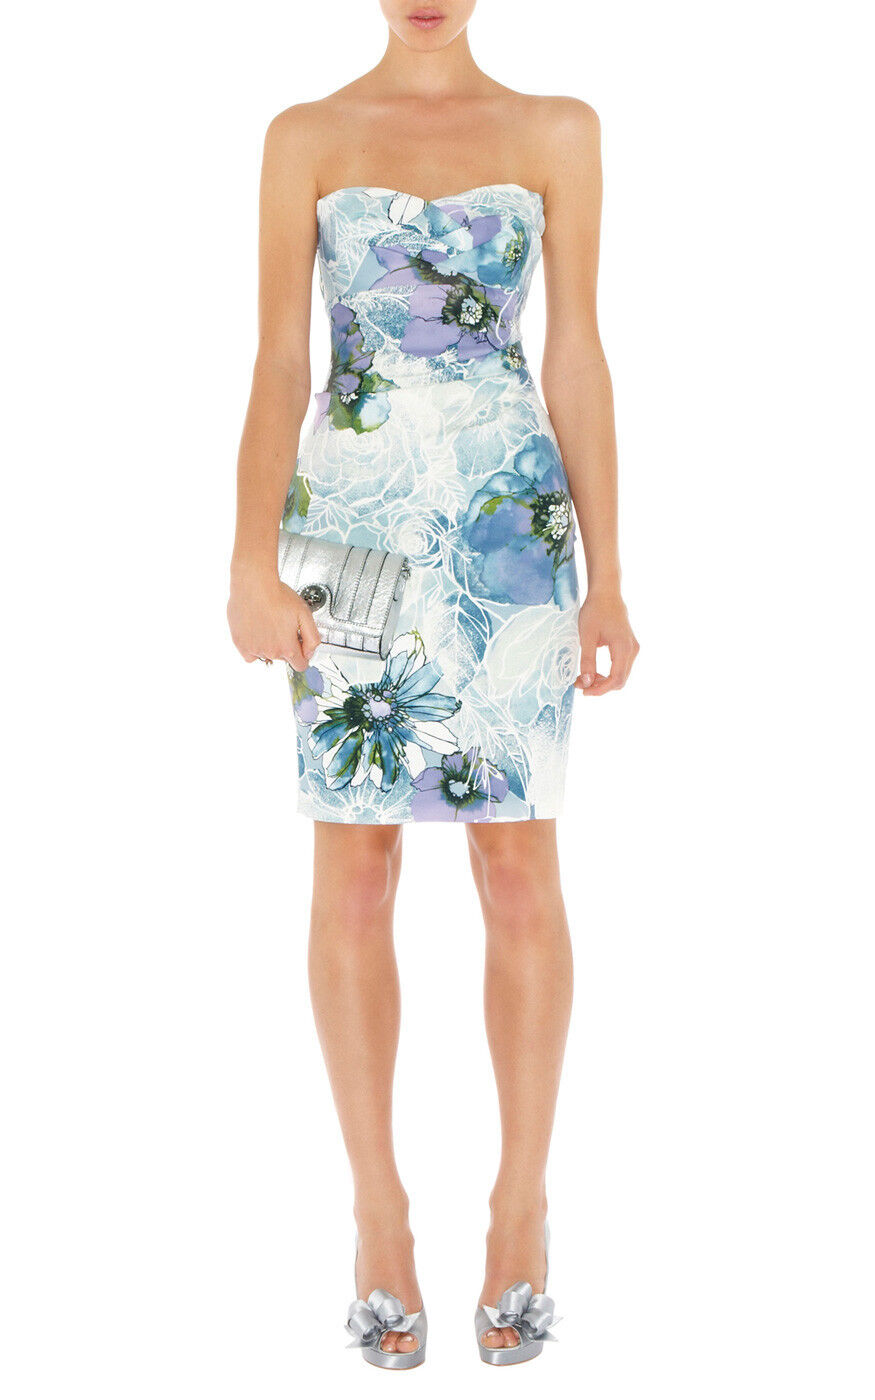 KAREN MILLEN VERY RARE ROMANTIC blueE & CREAM FLORAL PRINT CORSET DRESS 12 BNWT